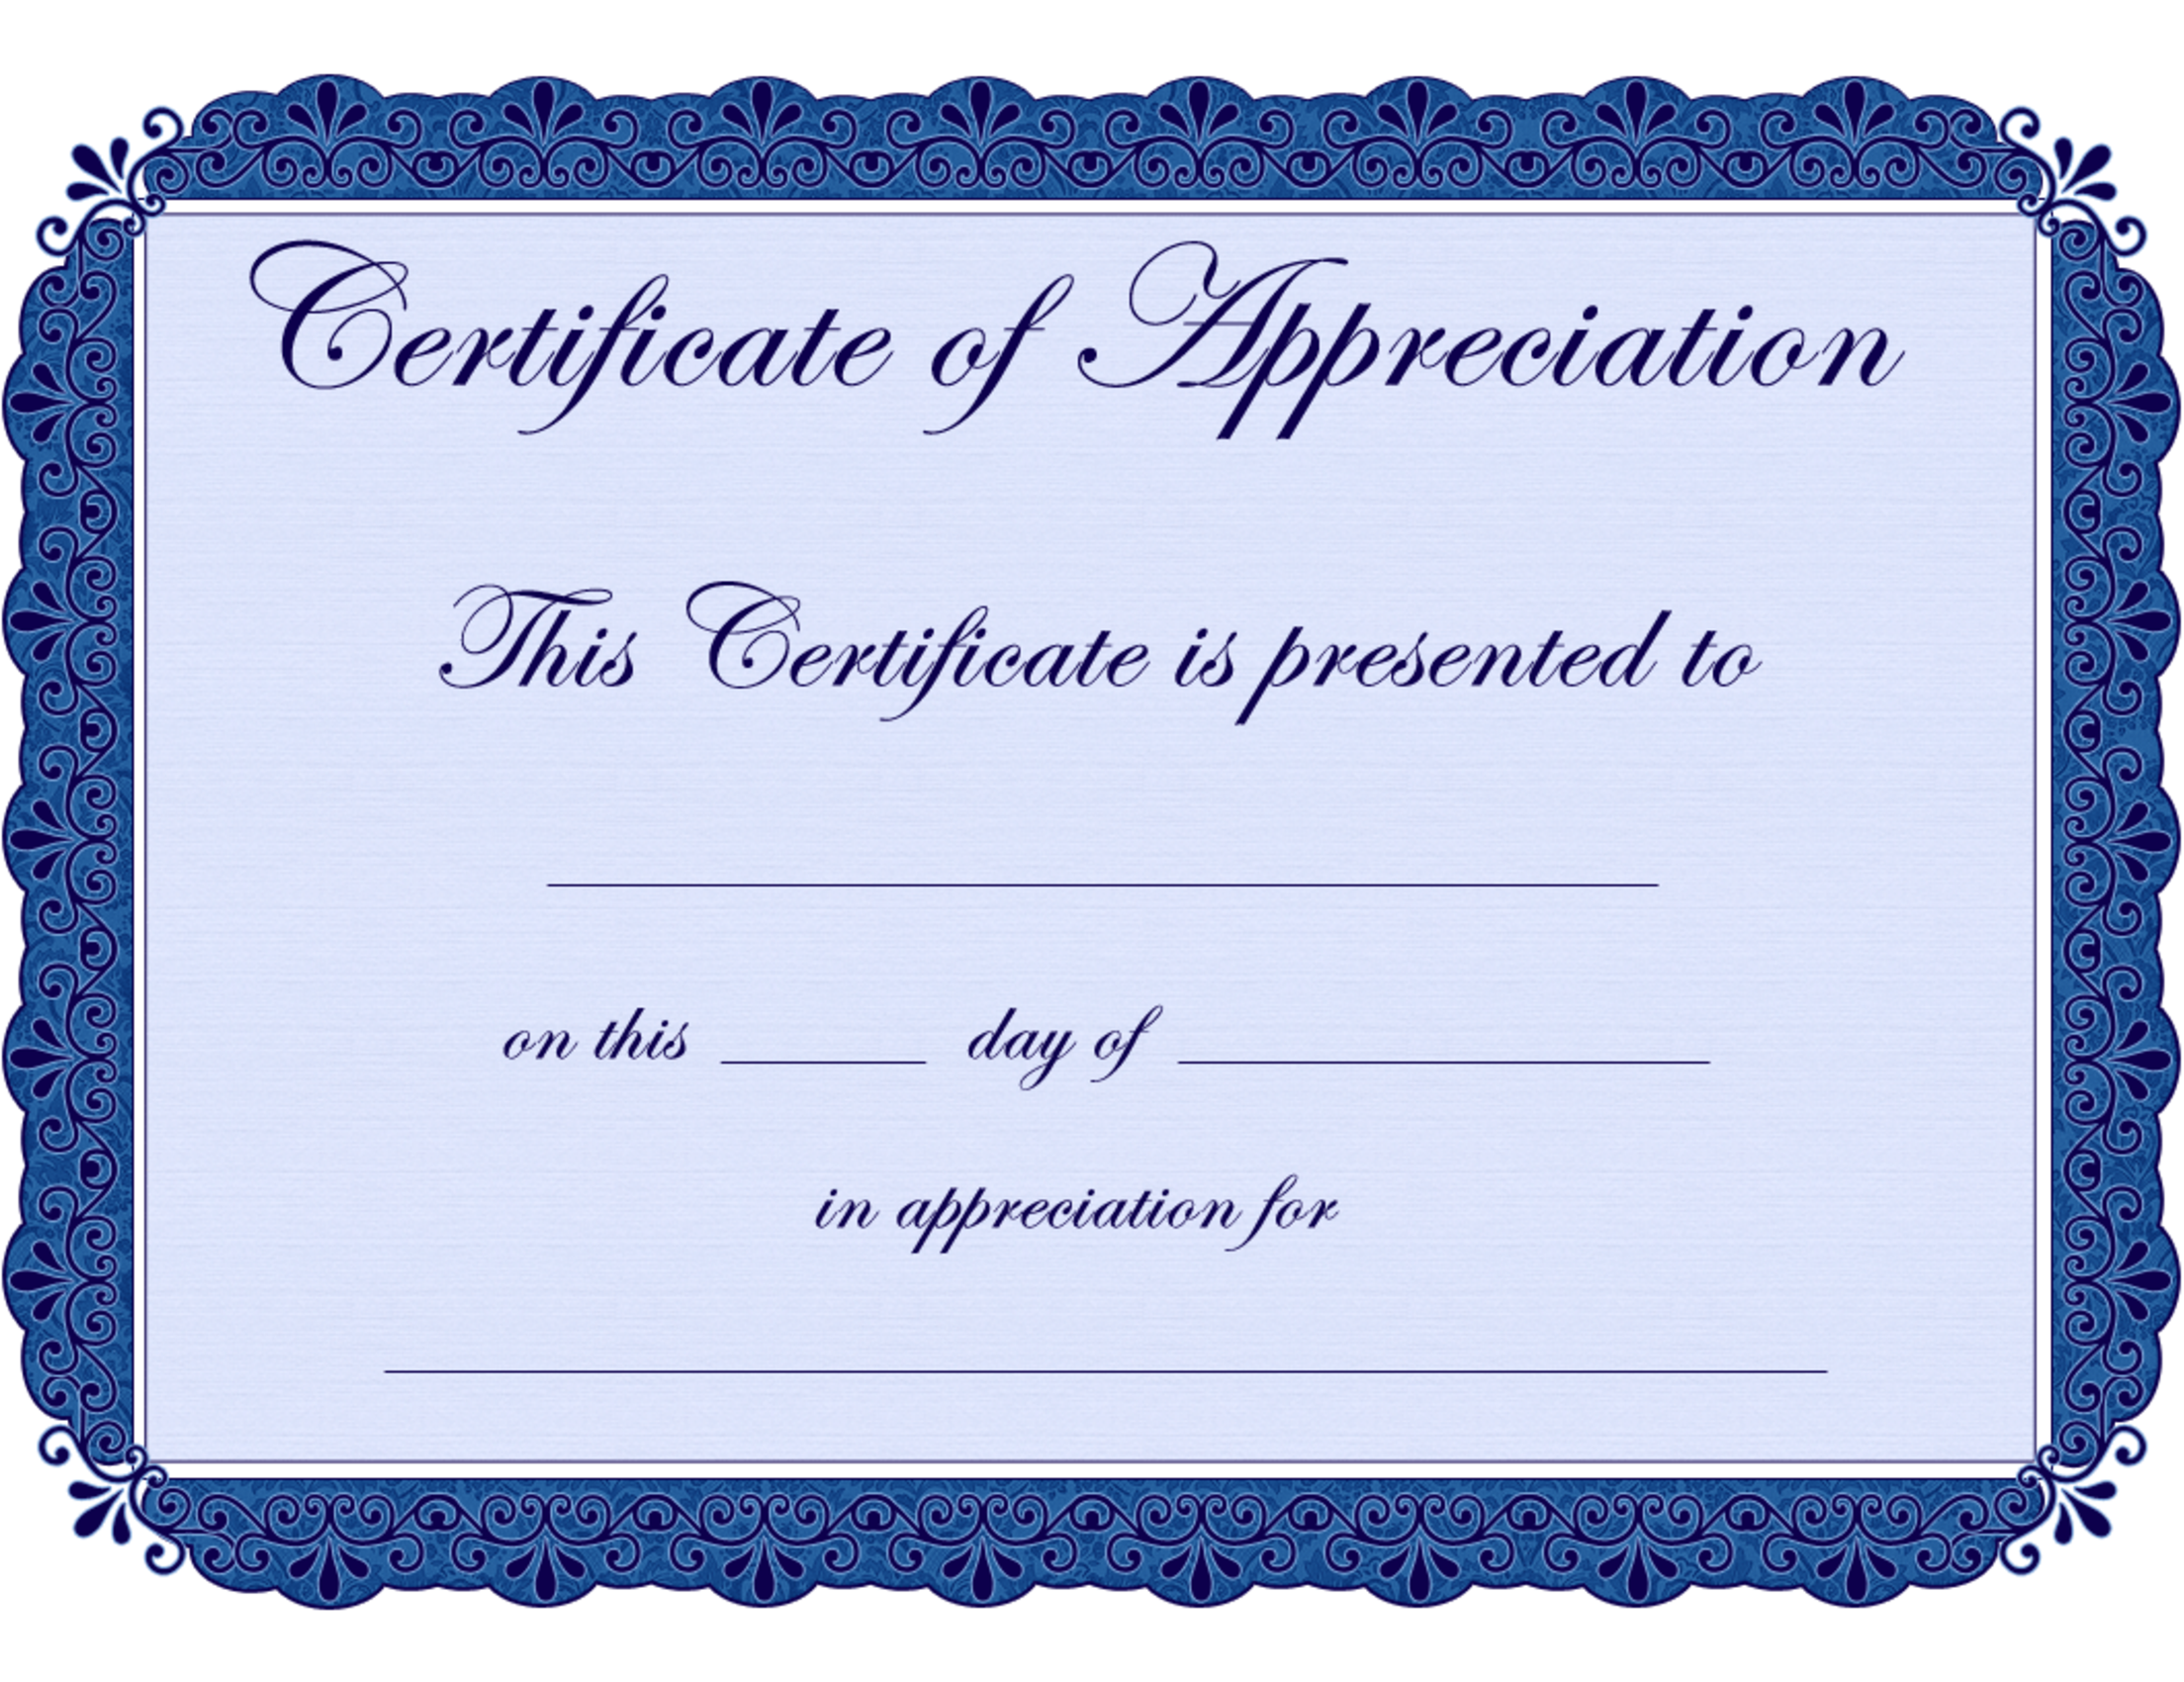 free printable certificates Certificate of Appreciation – Template for Certificates